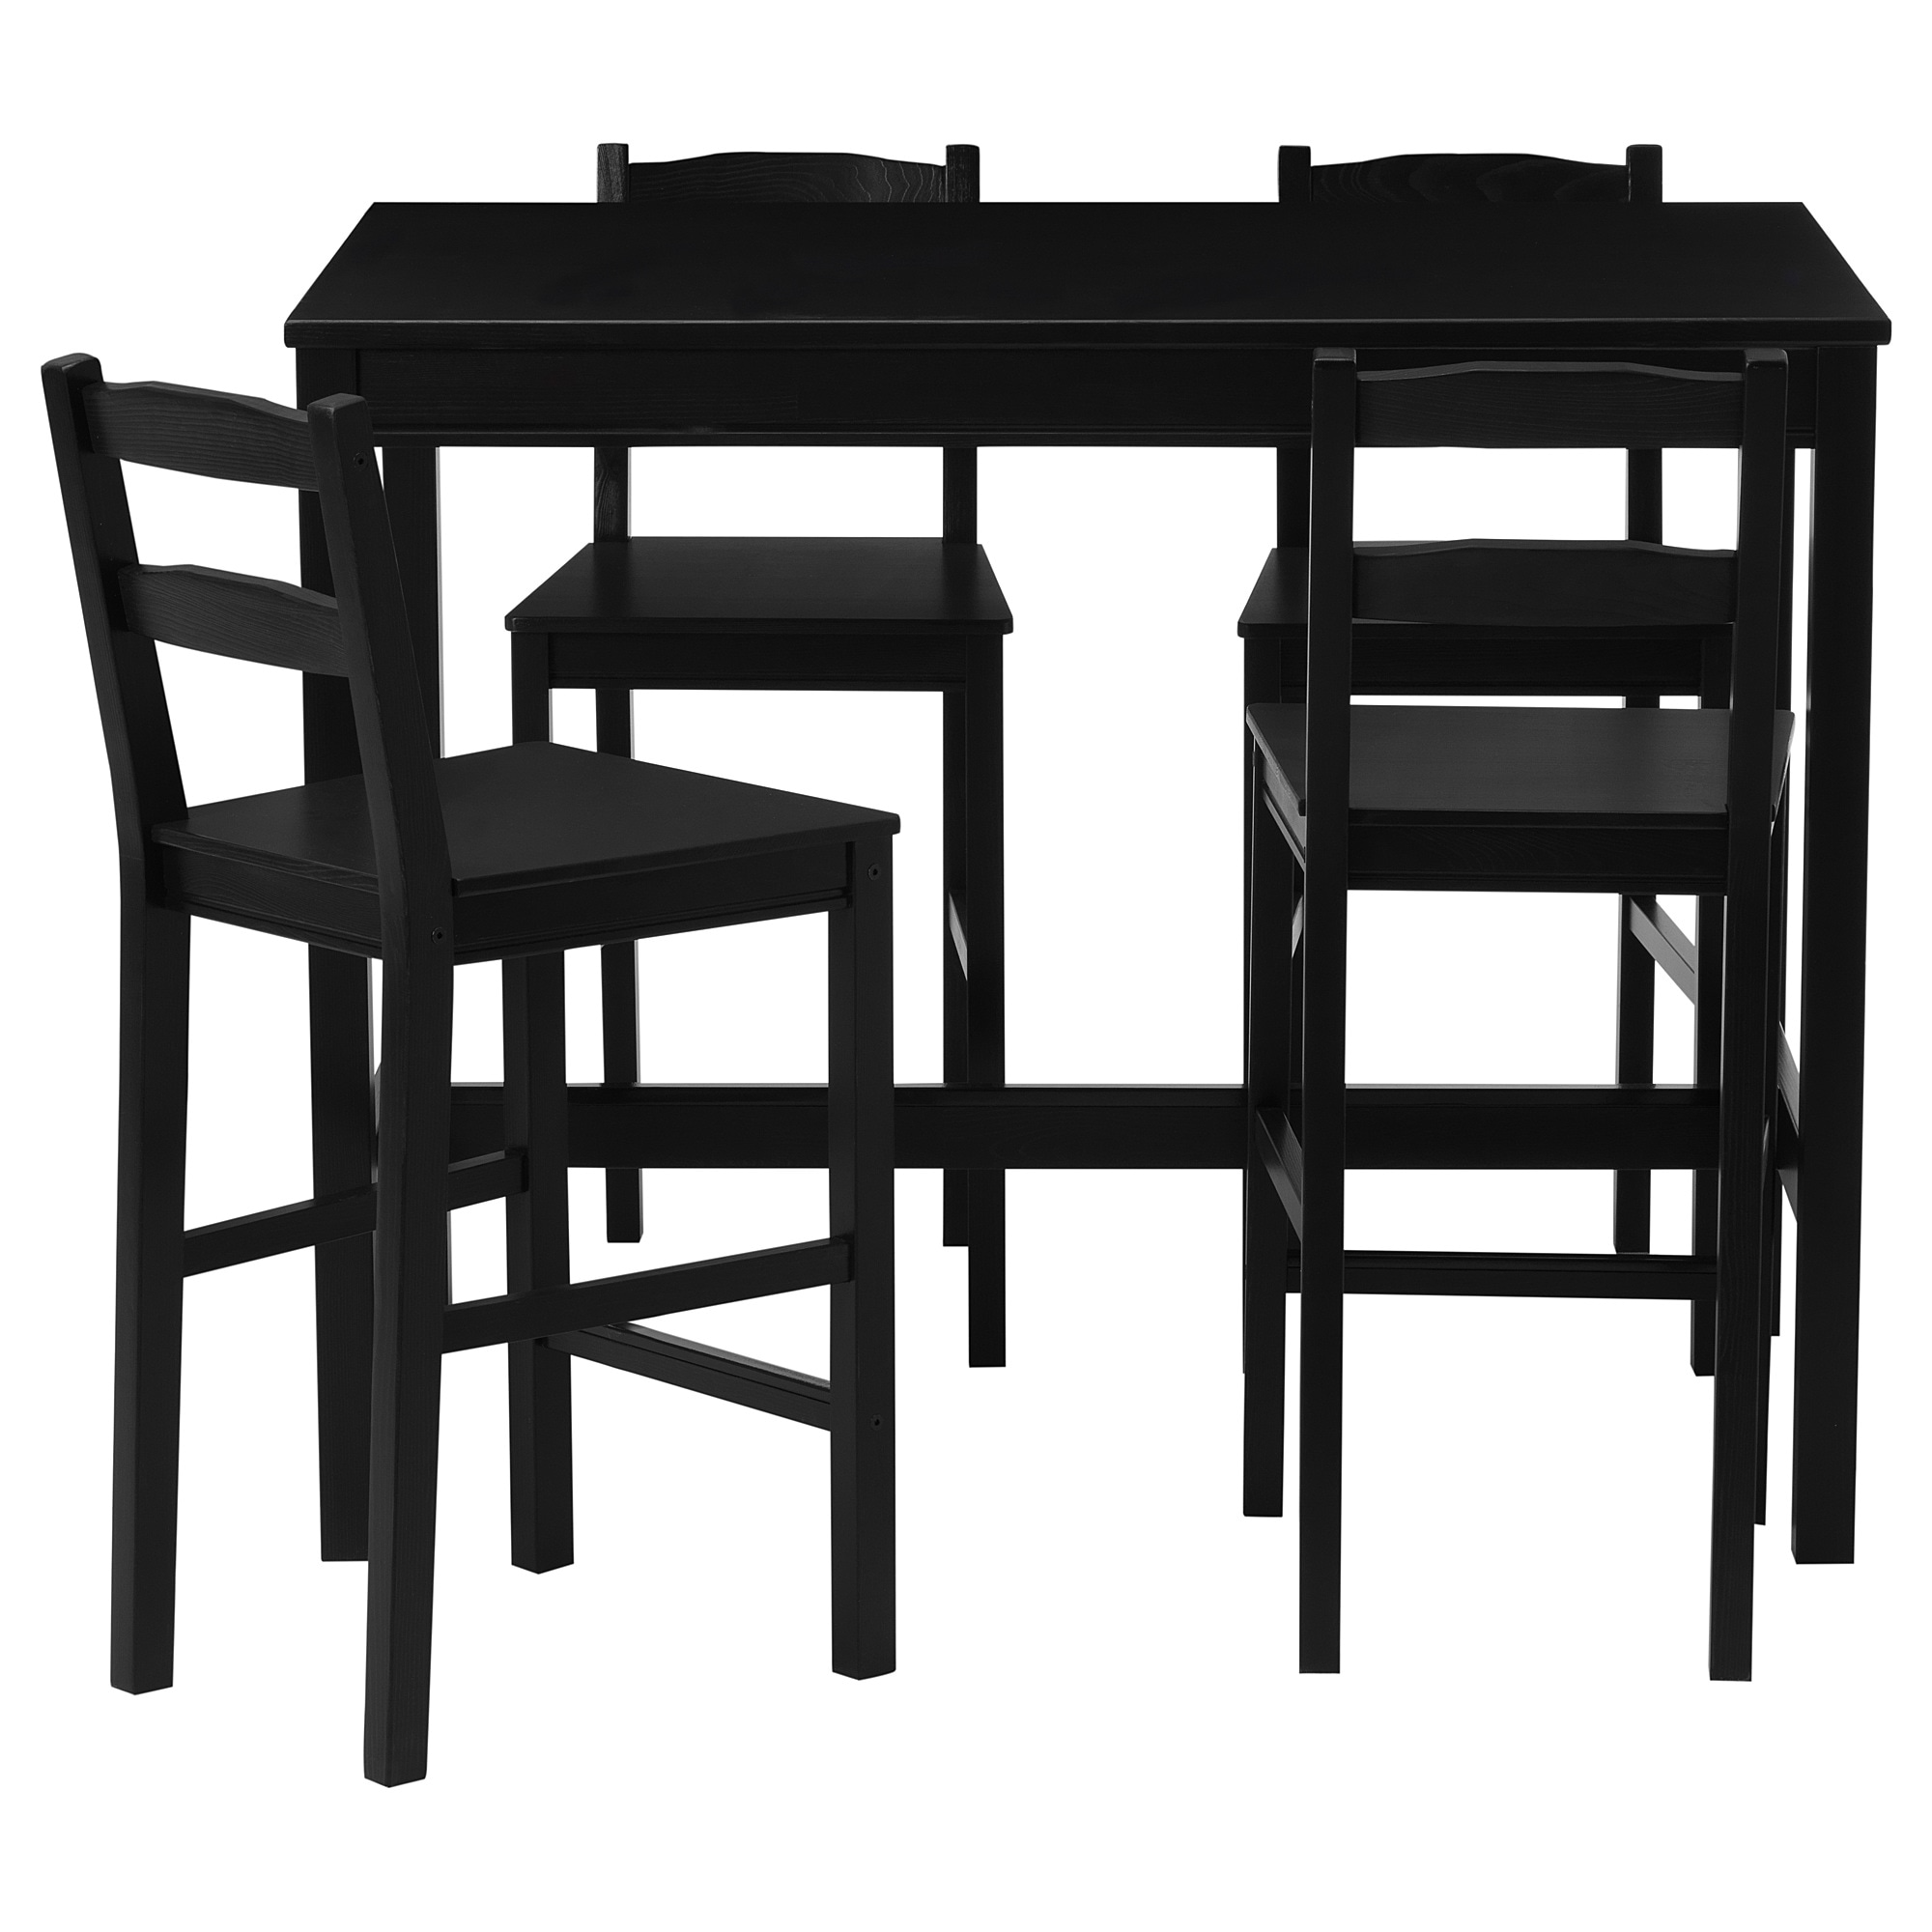 JOKKMOKK Bar Table And 4 Bar Stools, Black Brown Table Length: 46 1